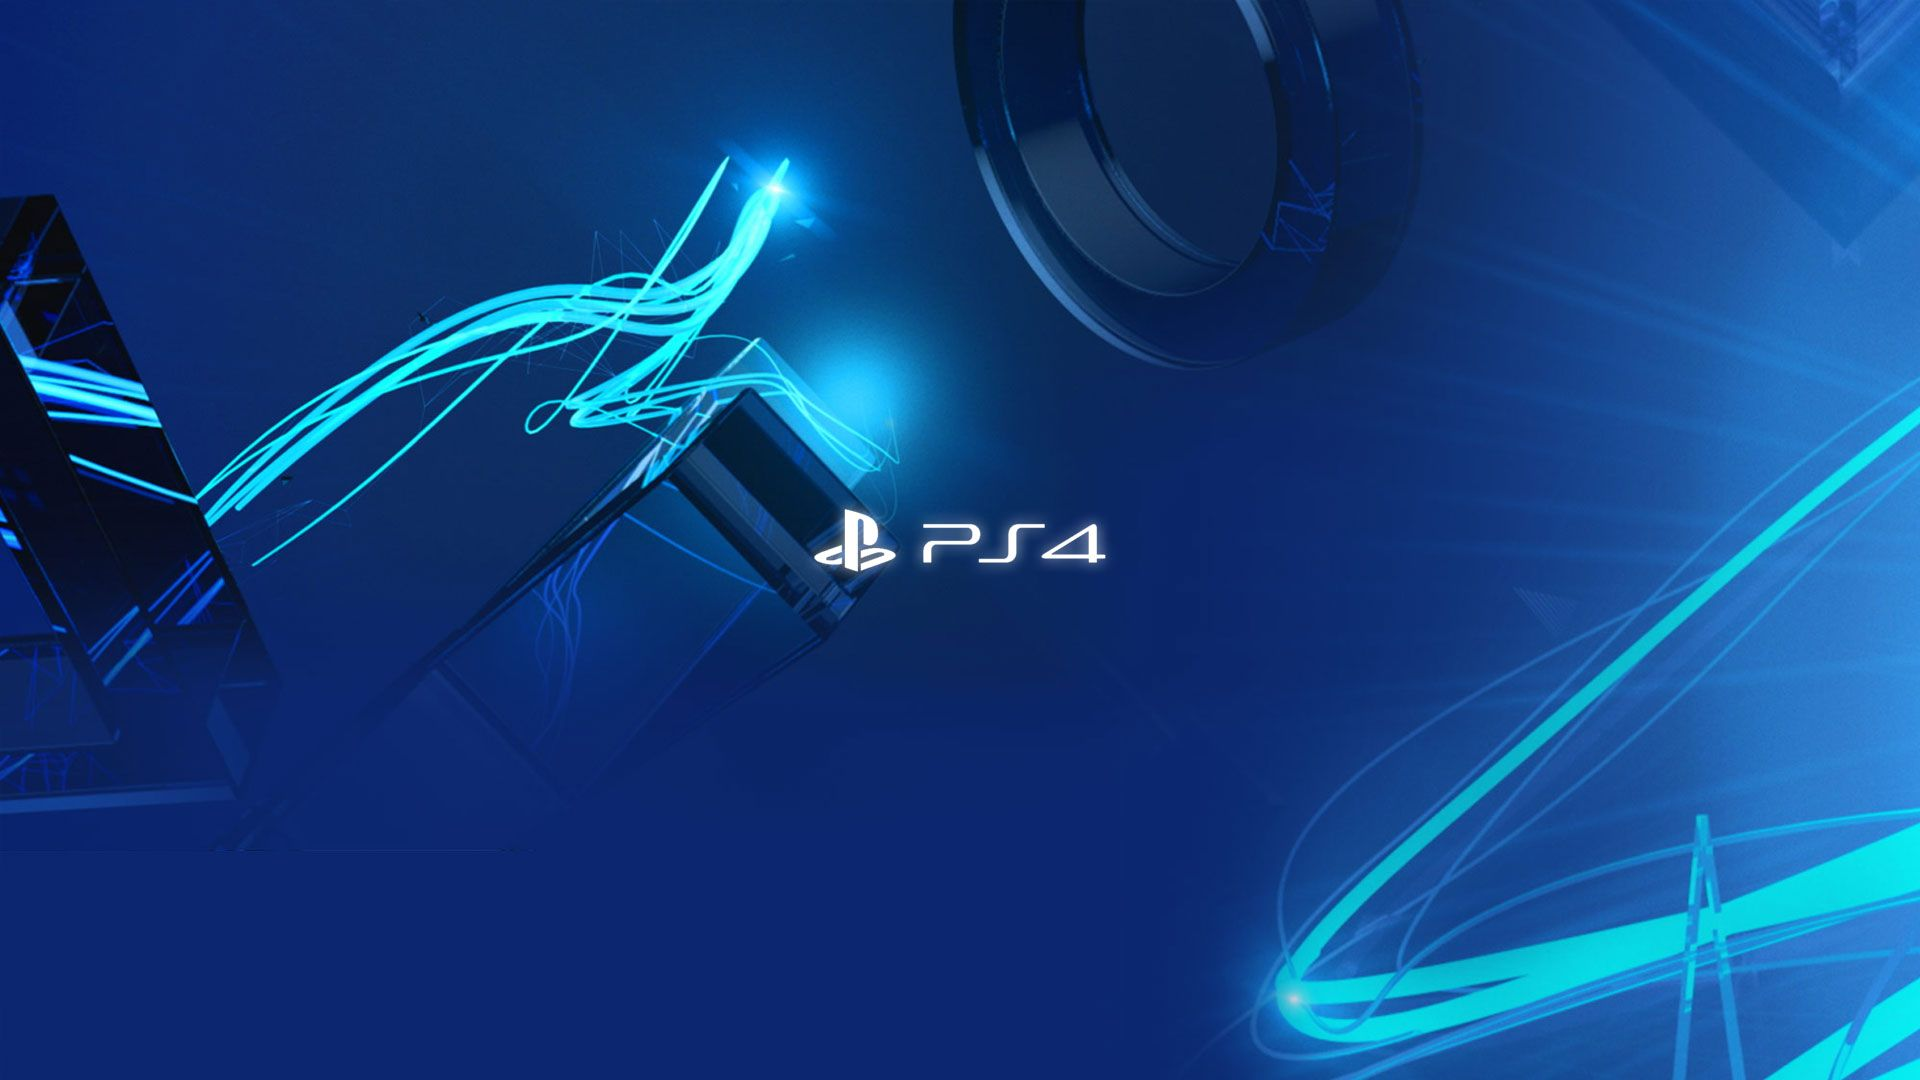 Playstation 4 wallpapers HD 63 Pinterest Playstation